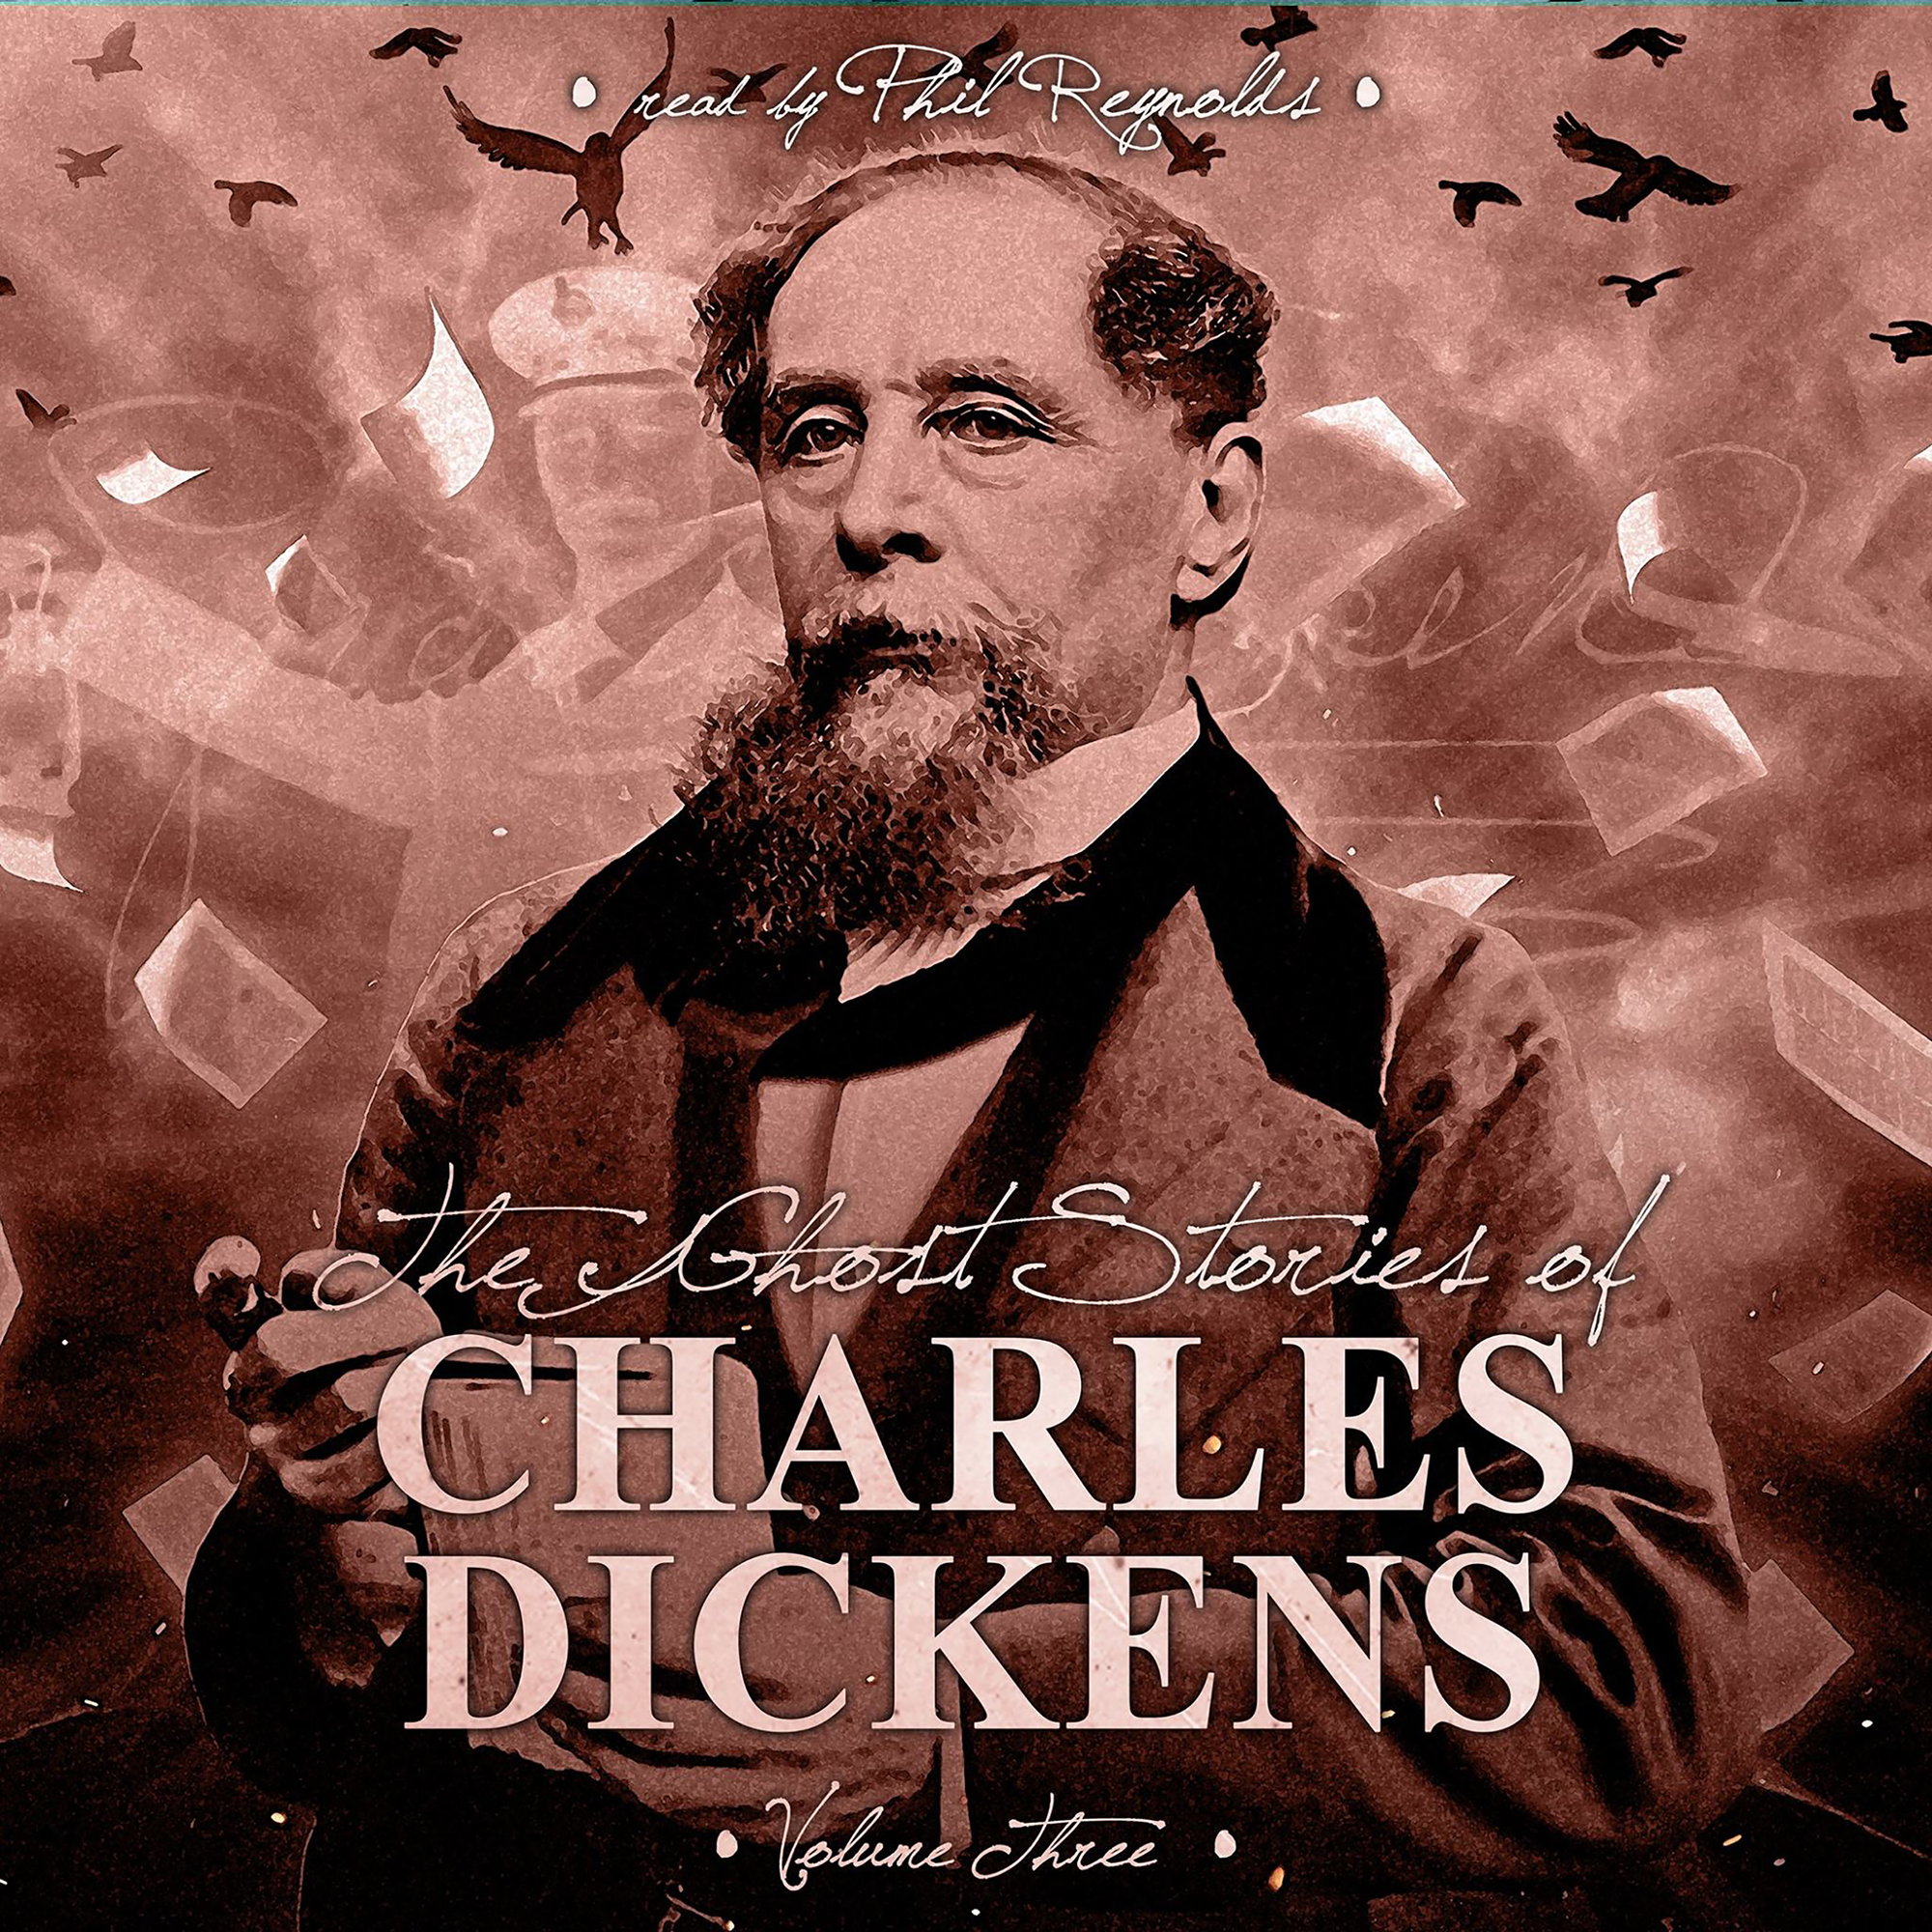 The Ghost Stories of Charles Dickens Vol 3